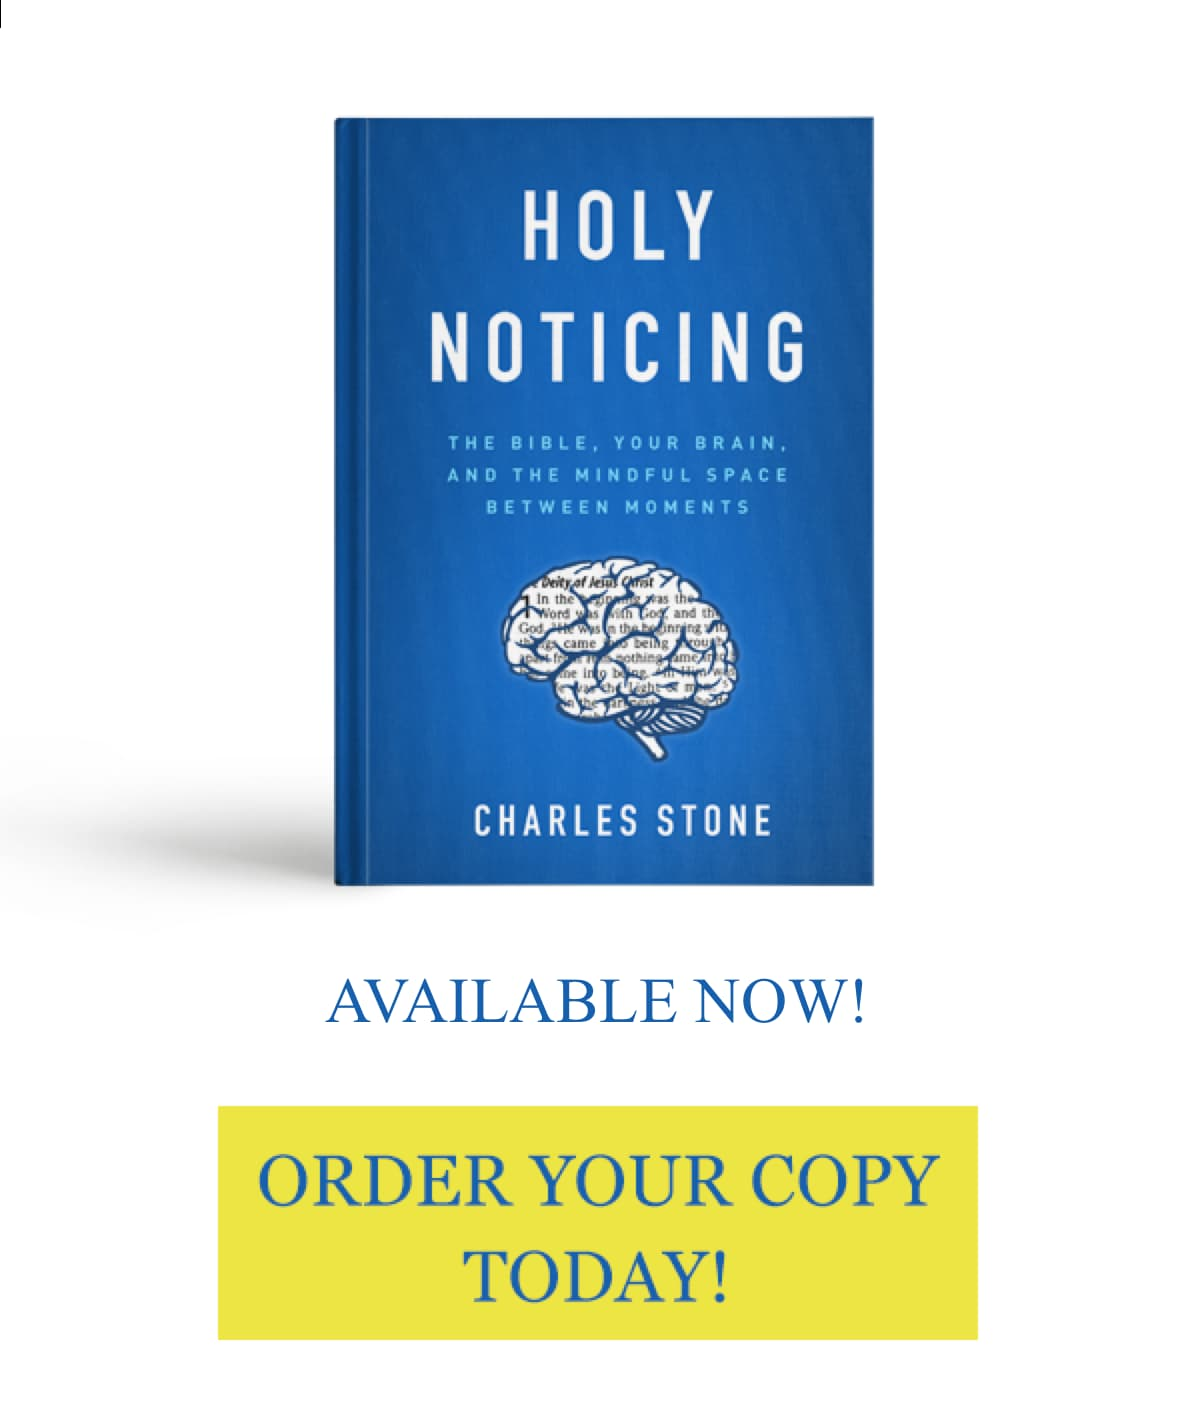 Holy Noticing book available now!